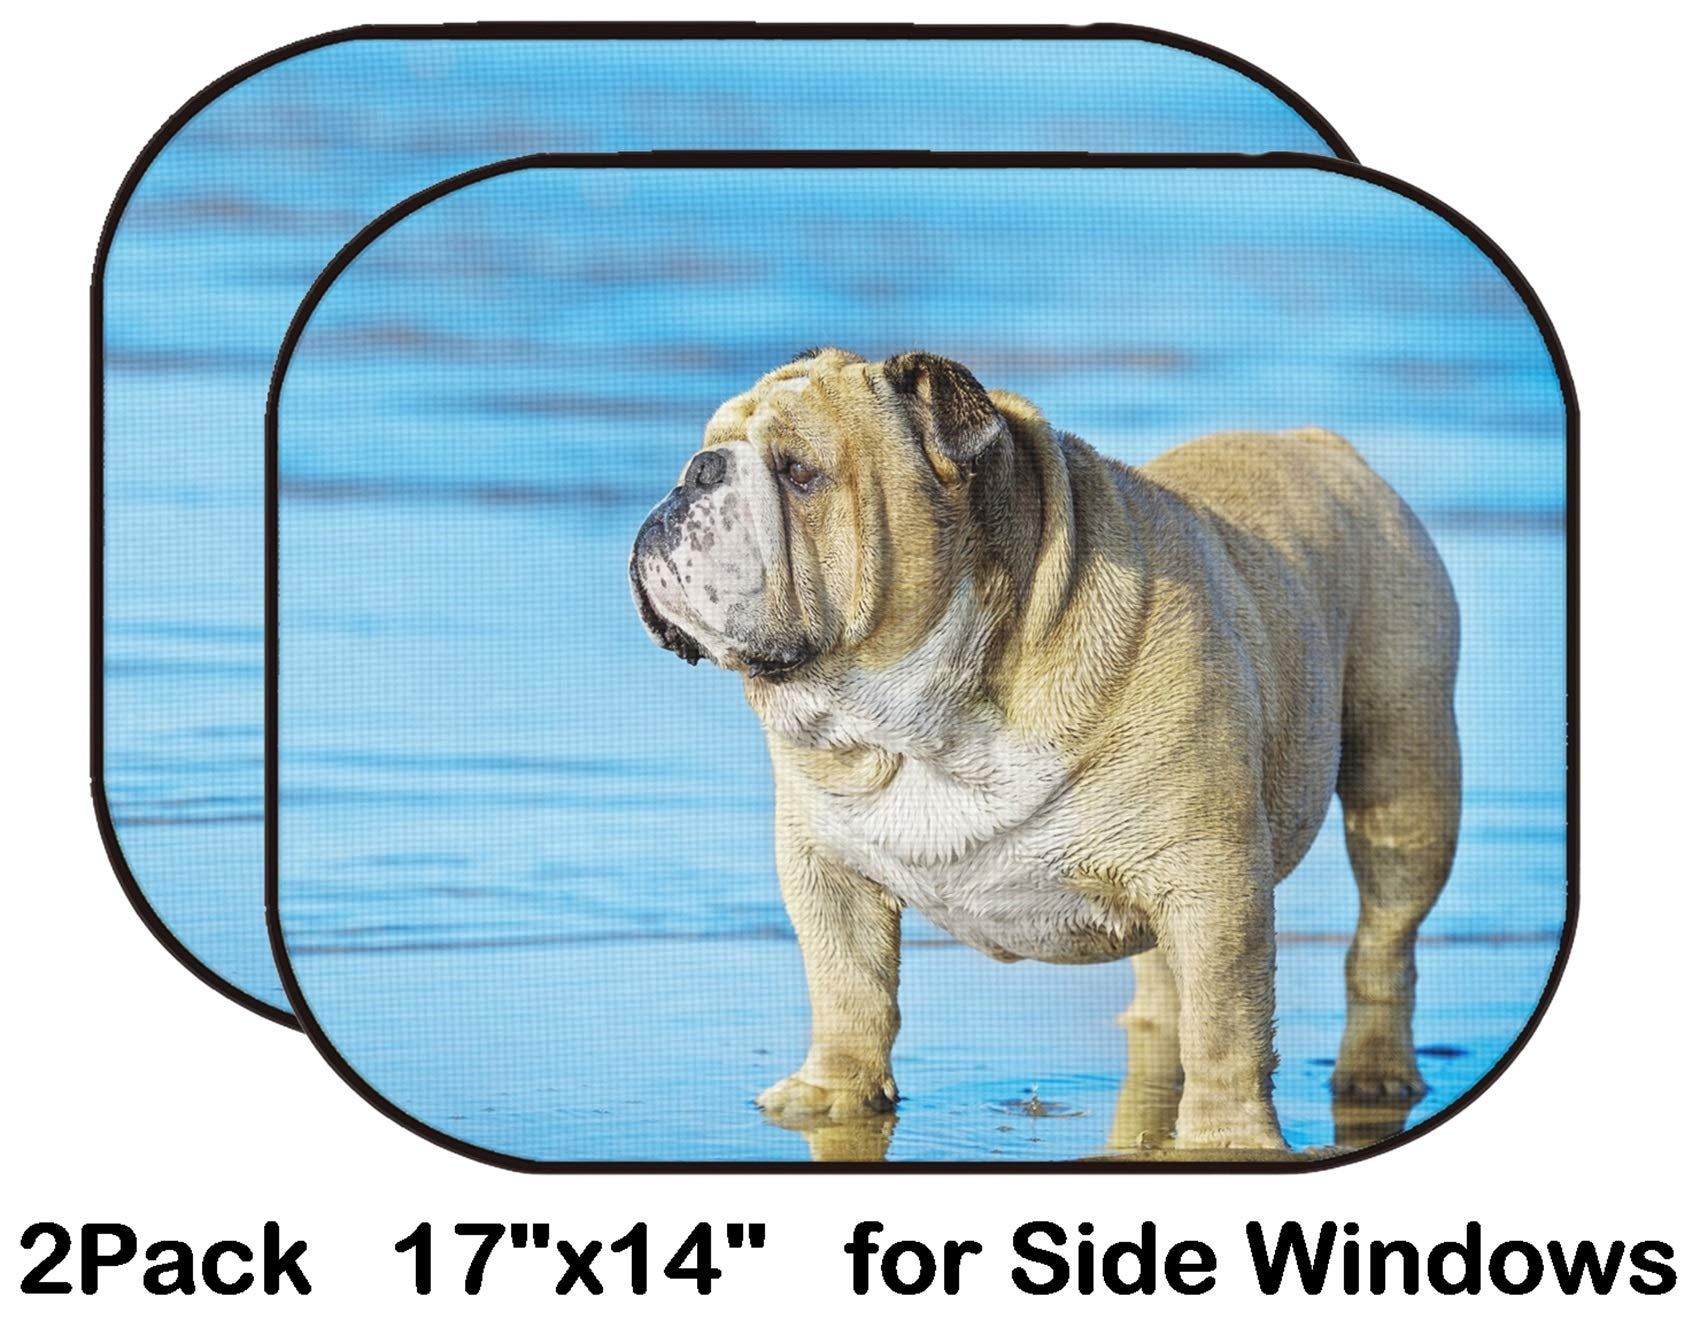 Liili Car Sun Shade for Side Rear Window Blocks UV Ray Sunlight Heat - Protect Baby and Pet - 2 Pack Funny Cute Dog English Bulldog Standing in The Water on his Mirror Reflection IMAG by Liili